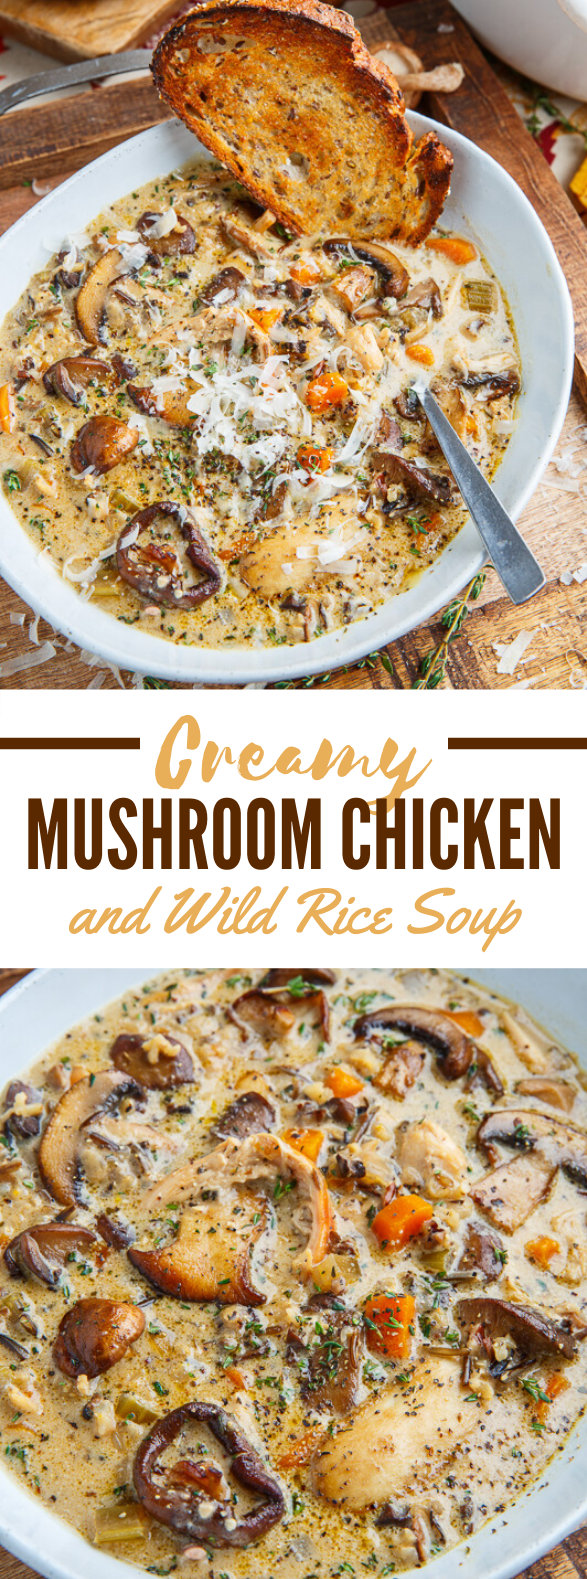 Creamy Mushroom Chicken and Wild Rice Soup #dinner #lunch